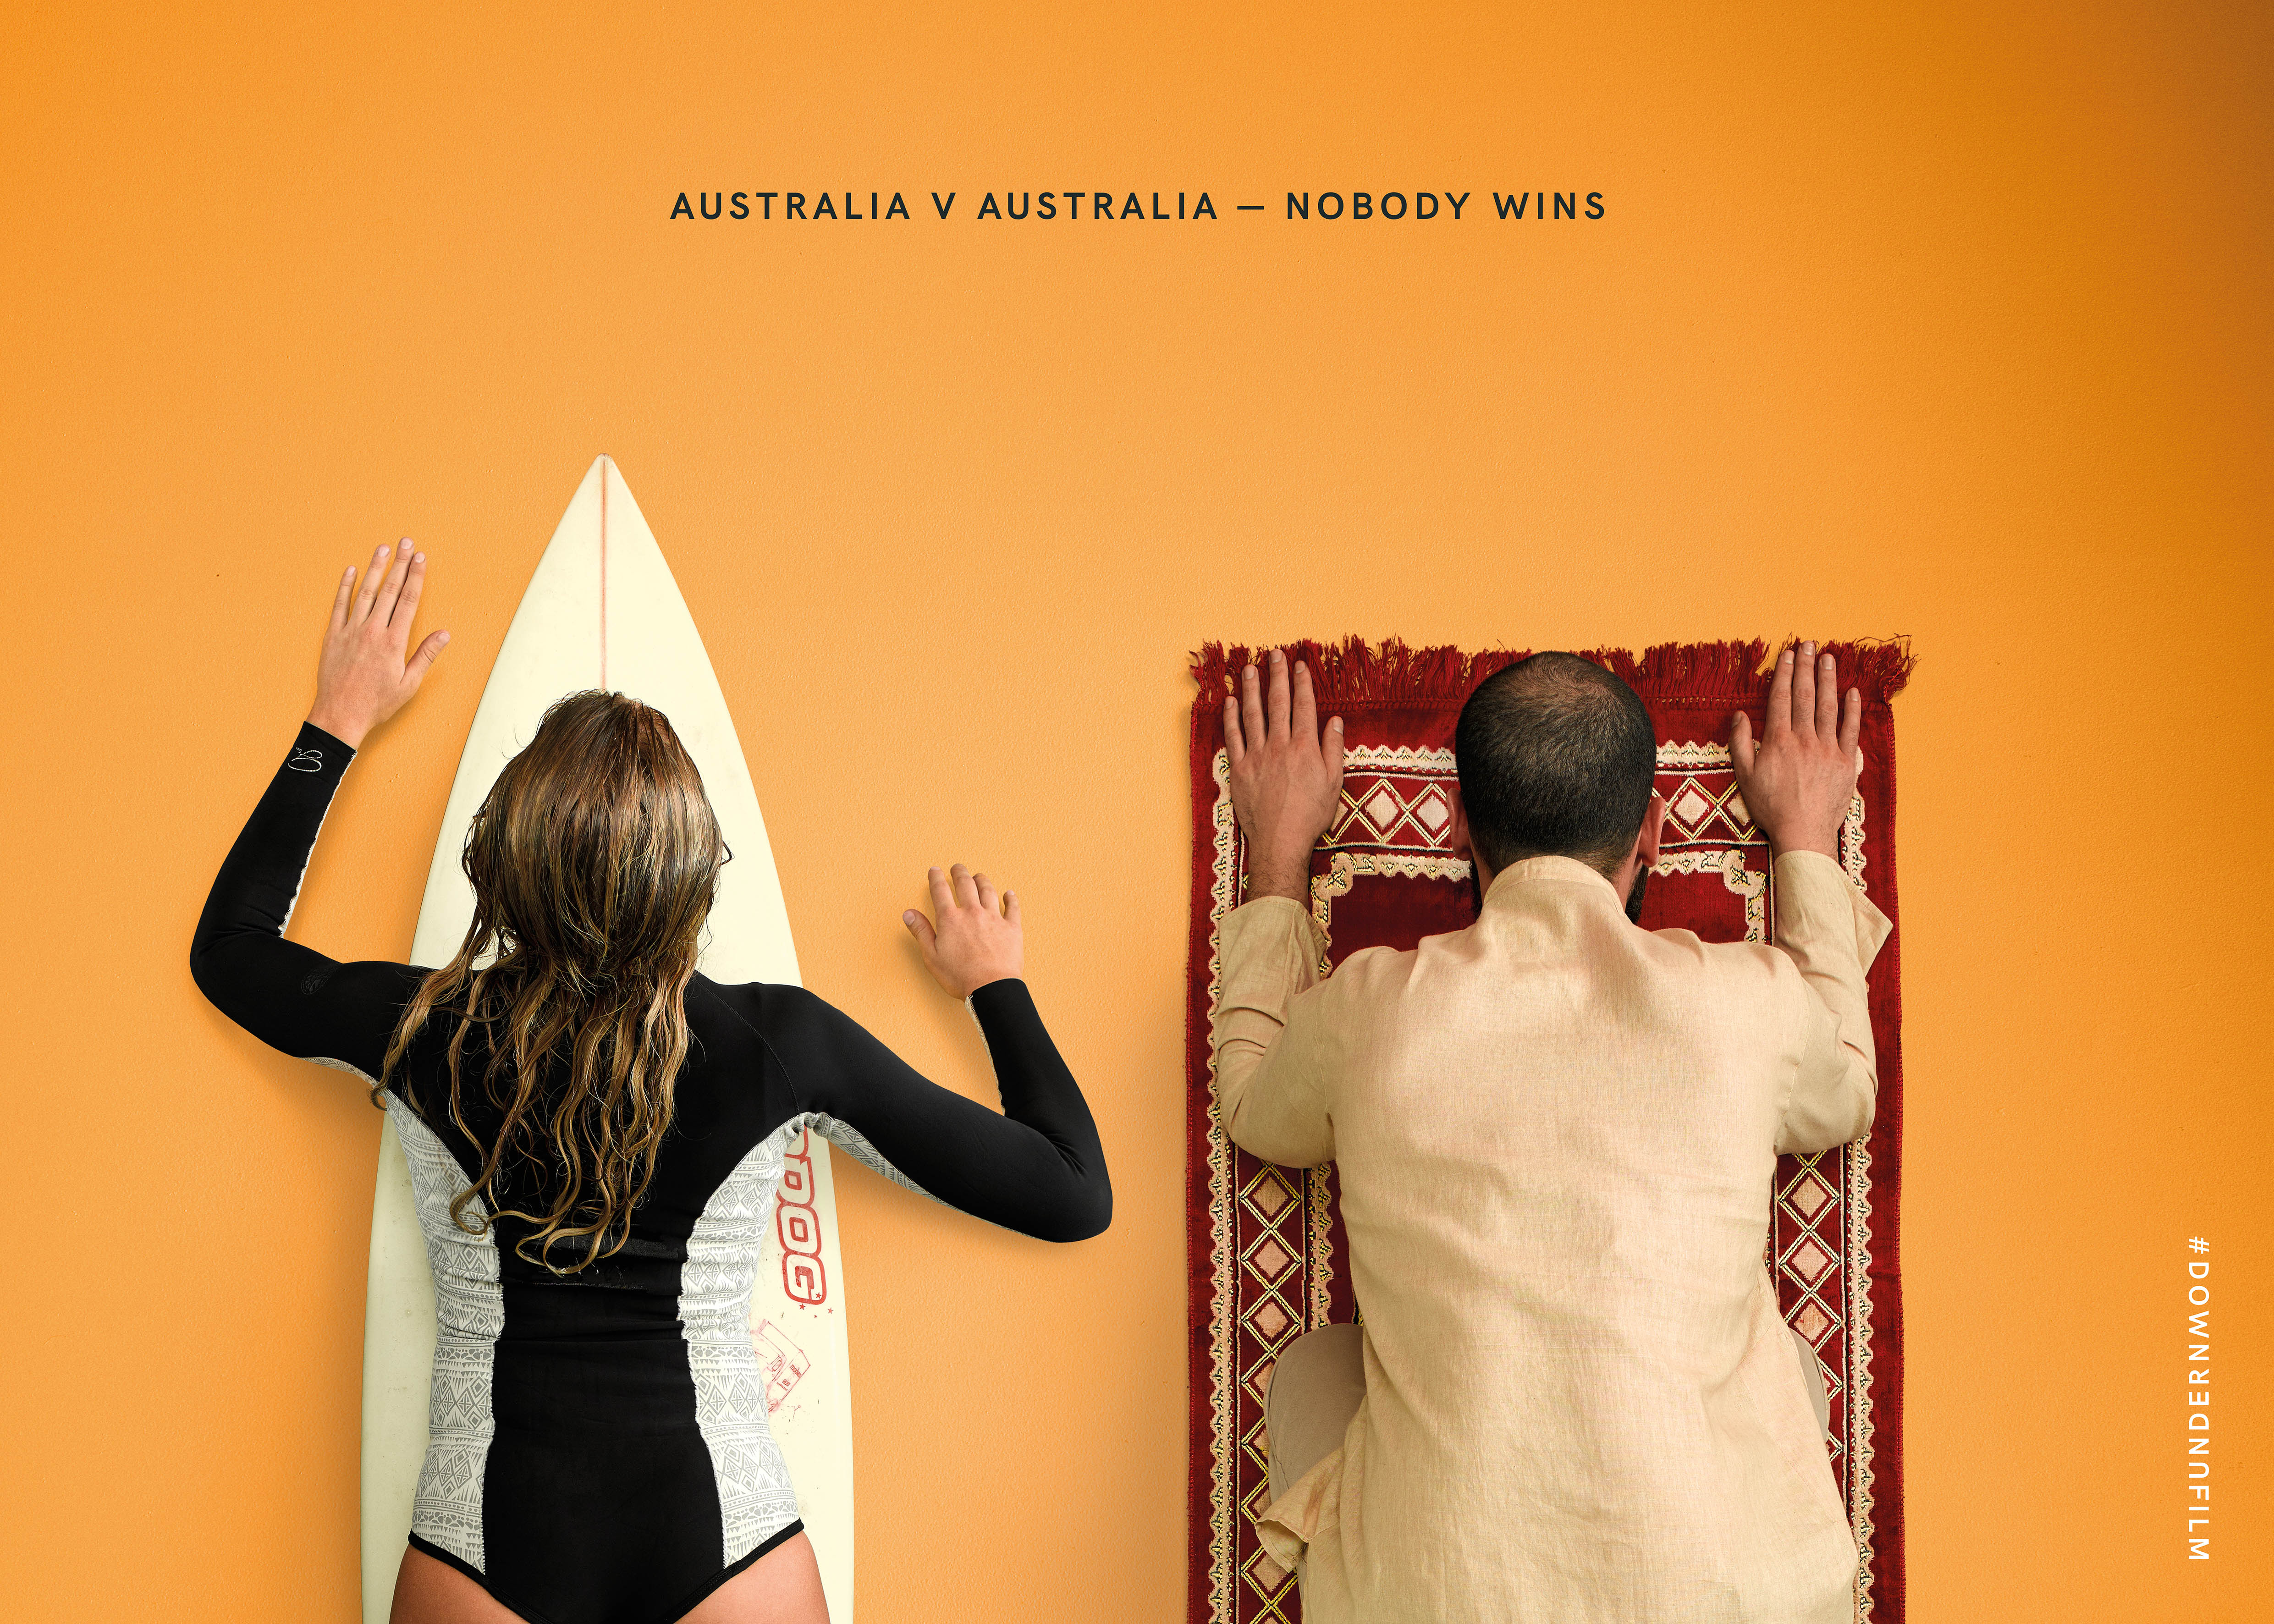 Down Under Poster 2